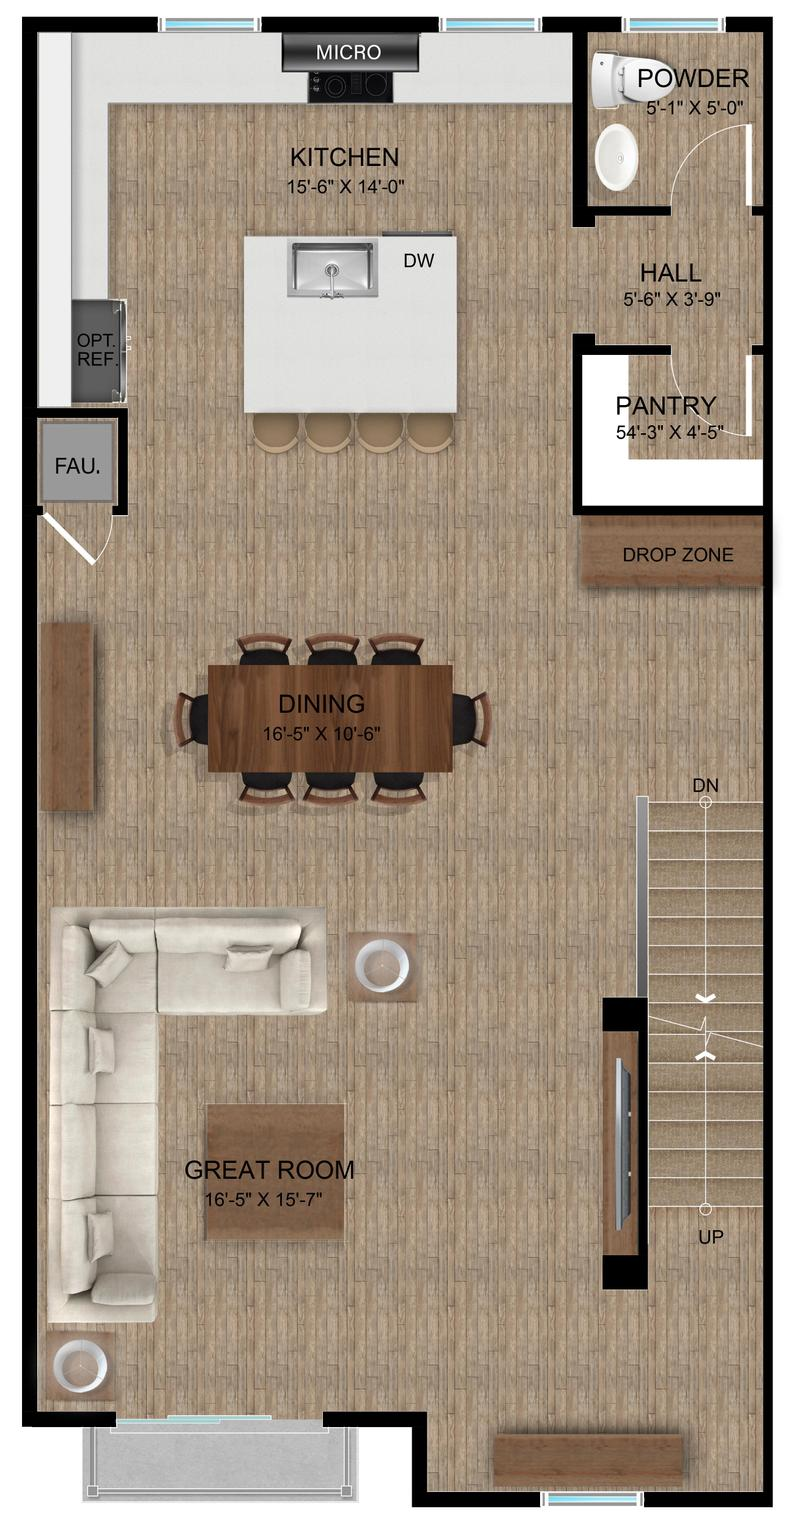 Plan C | Second Floor